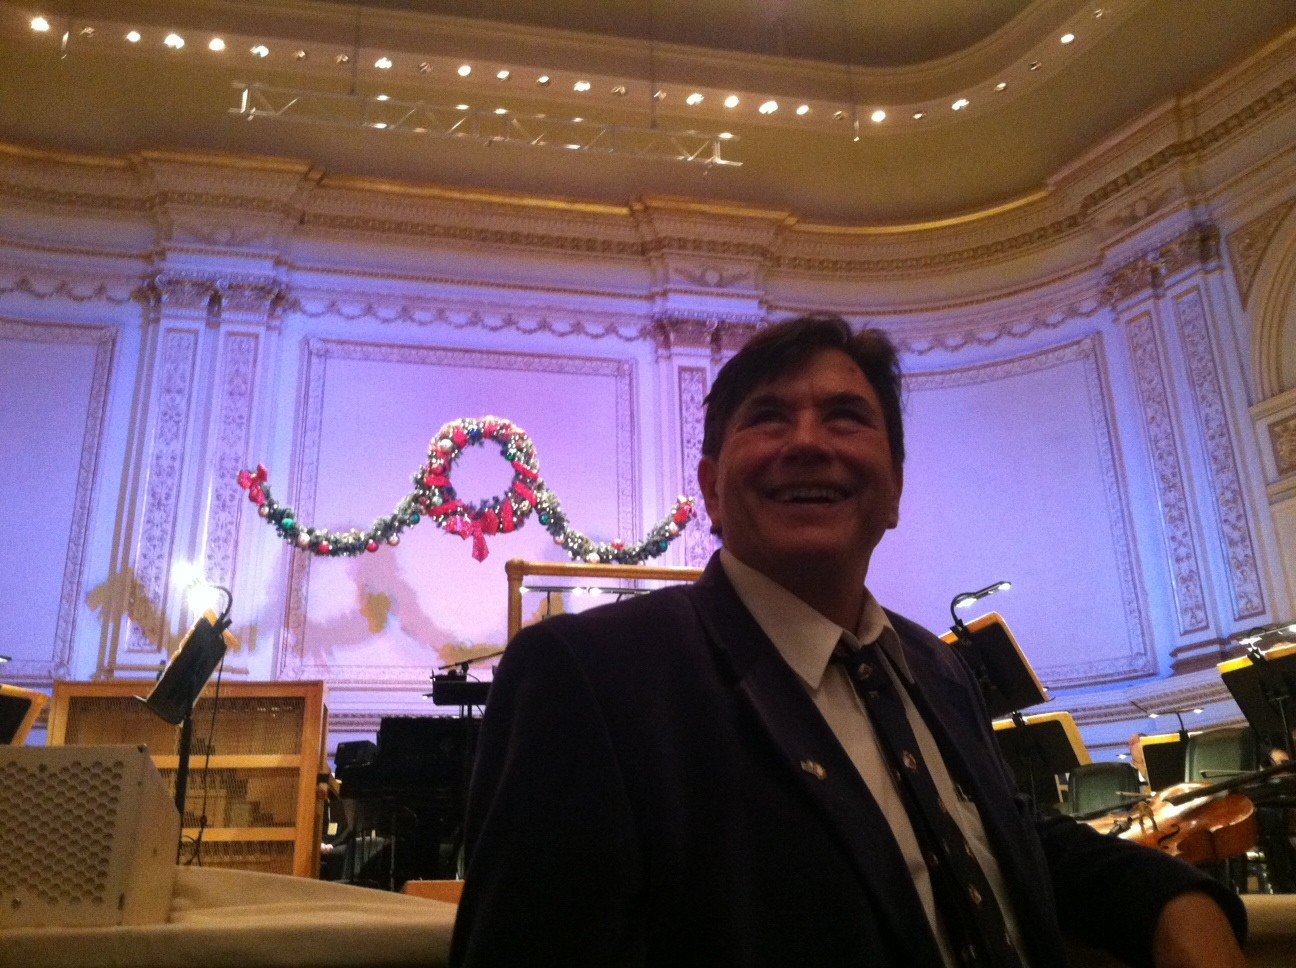 John at the NYC Pops Concert